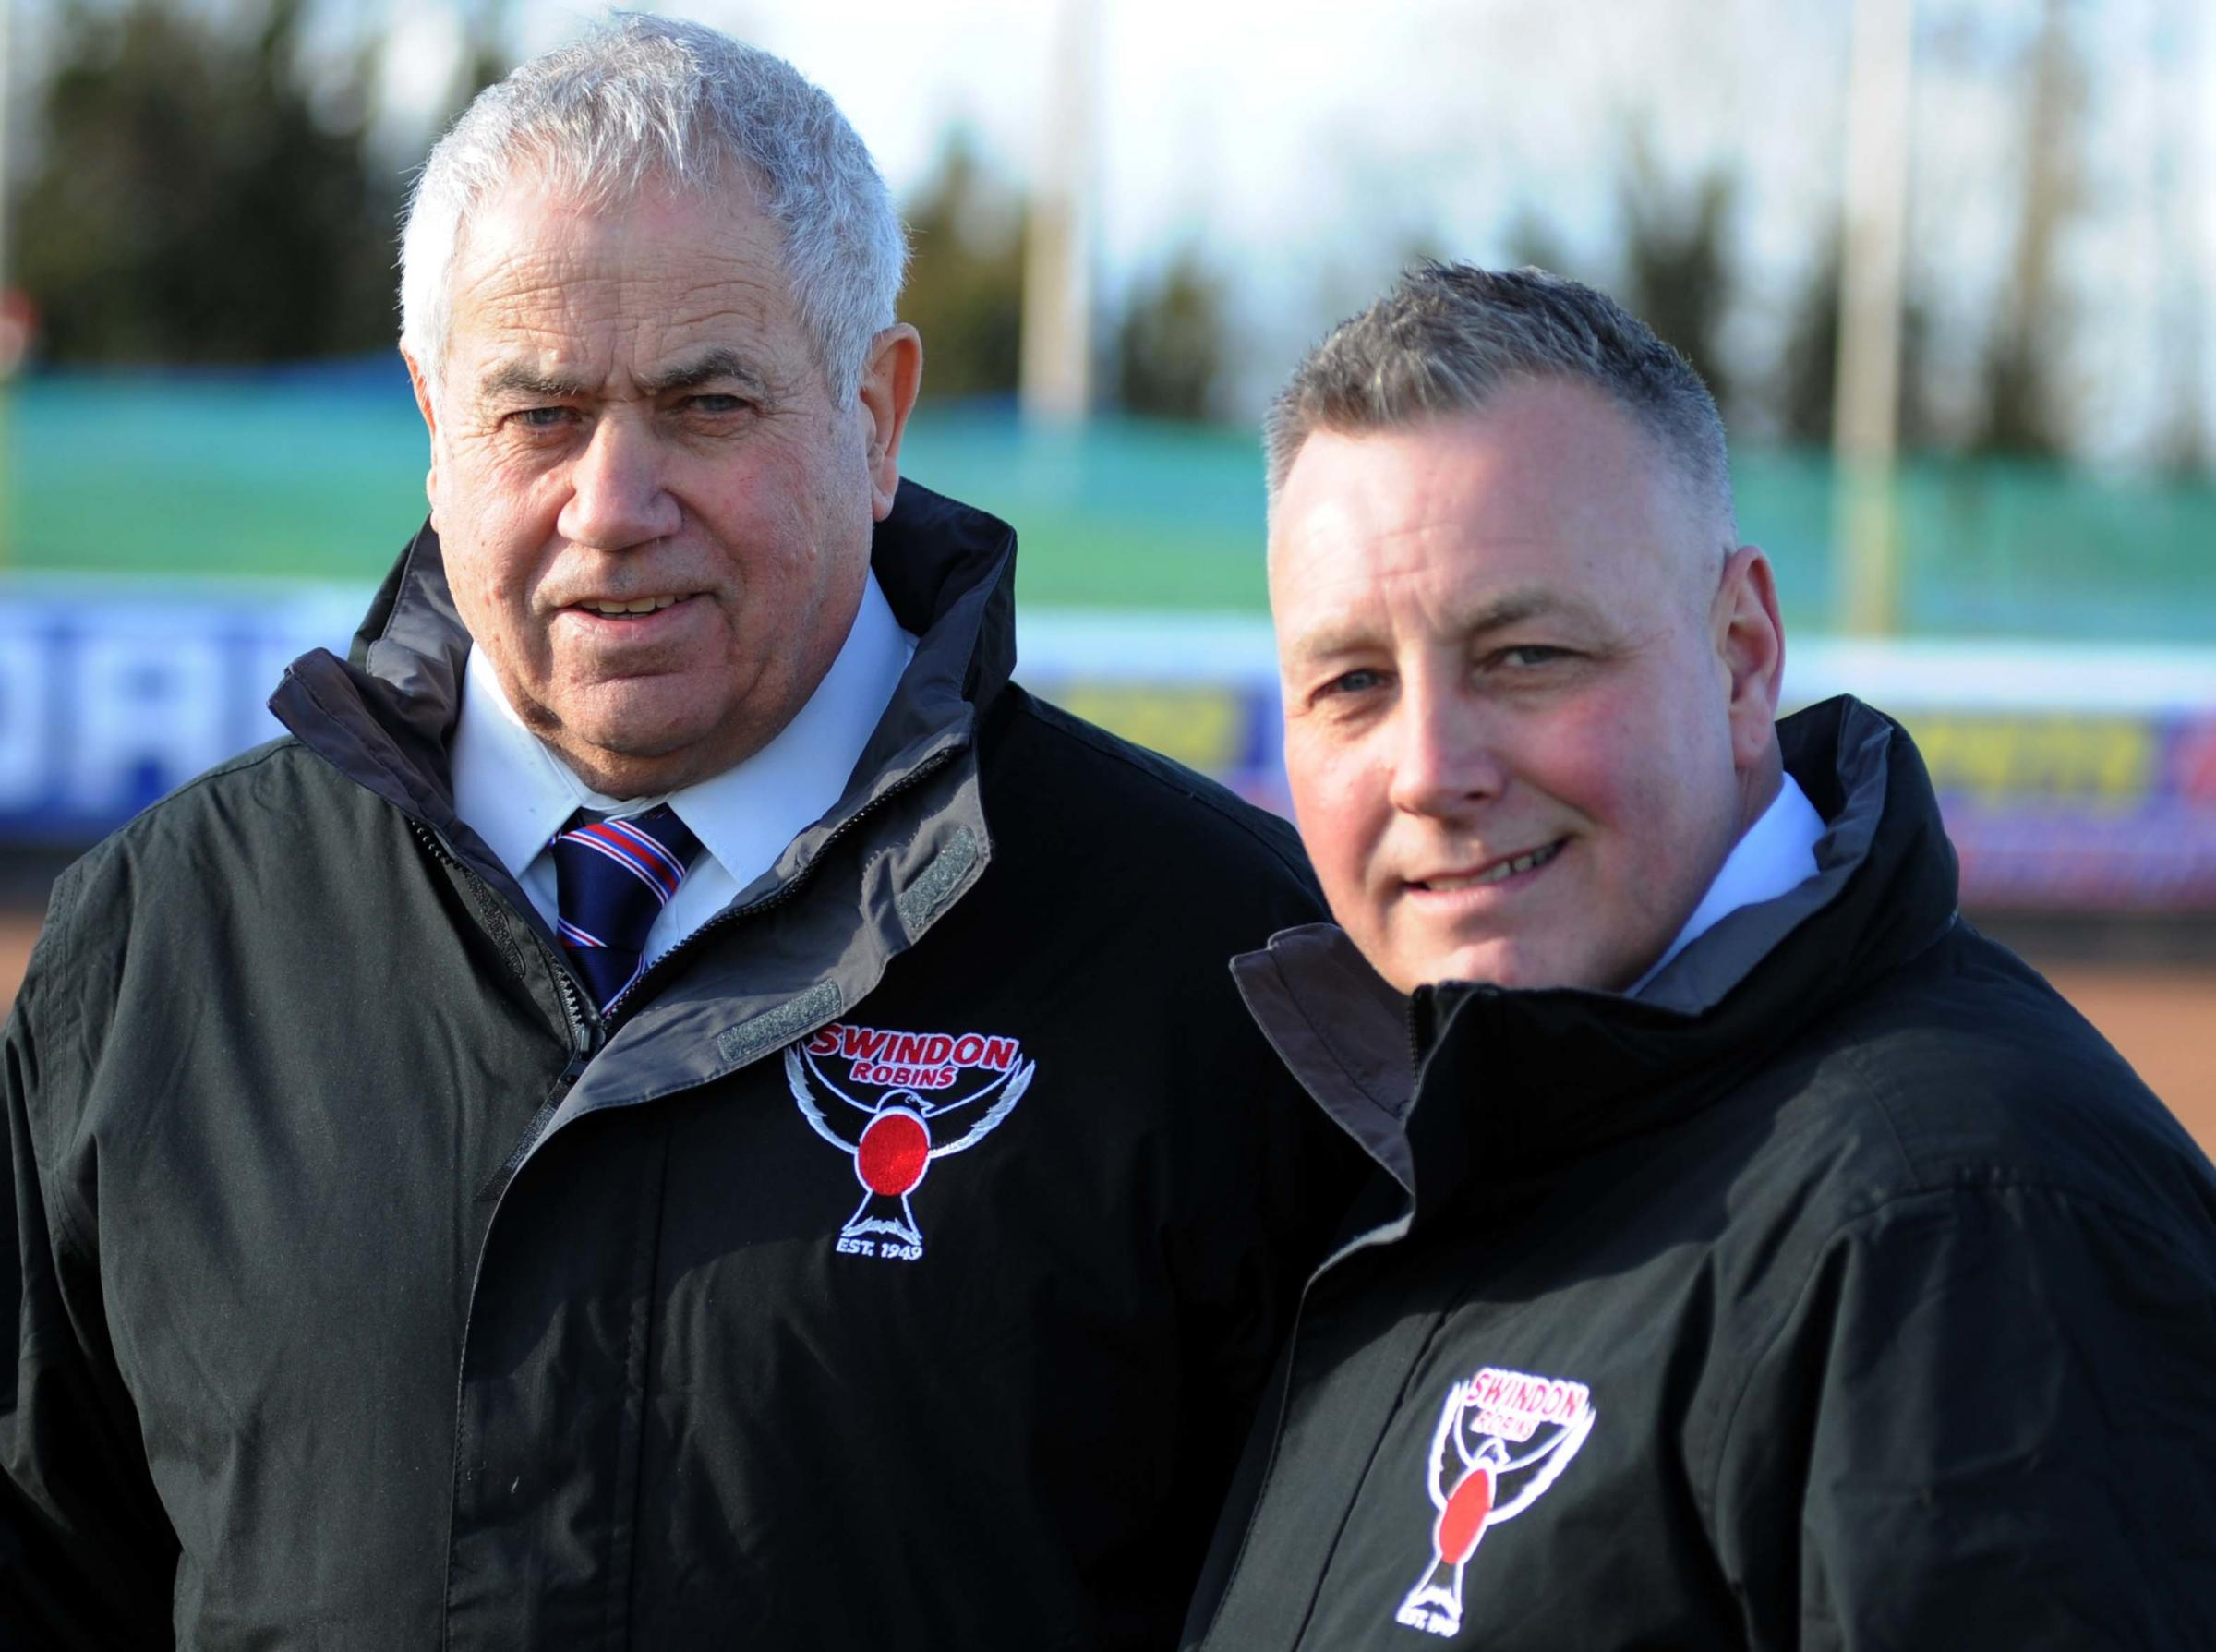 Swindon Robins' Press Day        Pic Dave Evans   24.3.15.Team boss Alun Rositer withg co-promoter Colin Pratt.